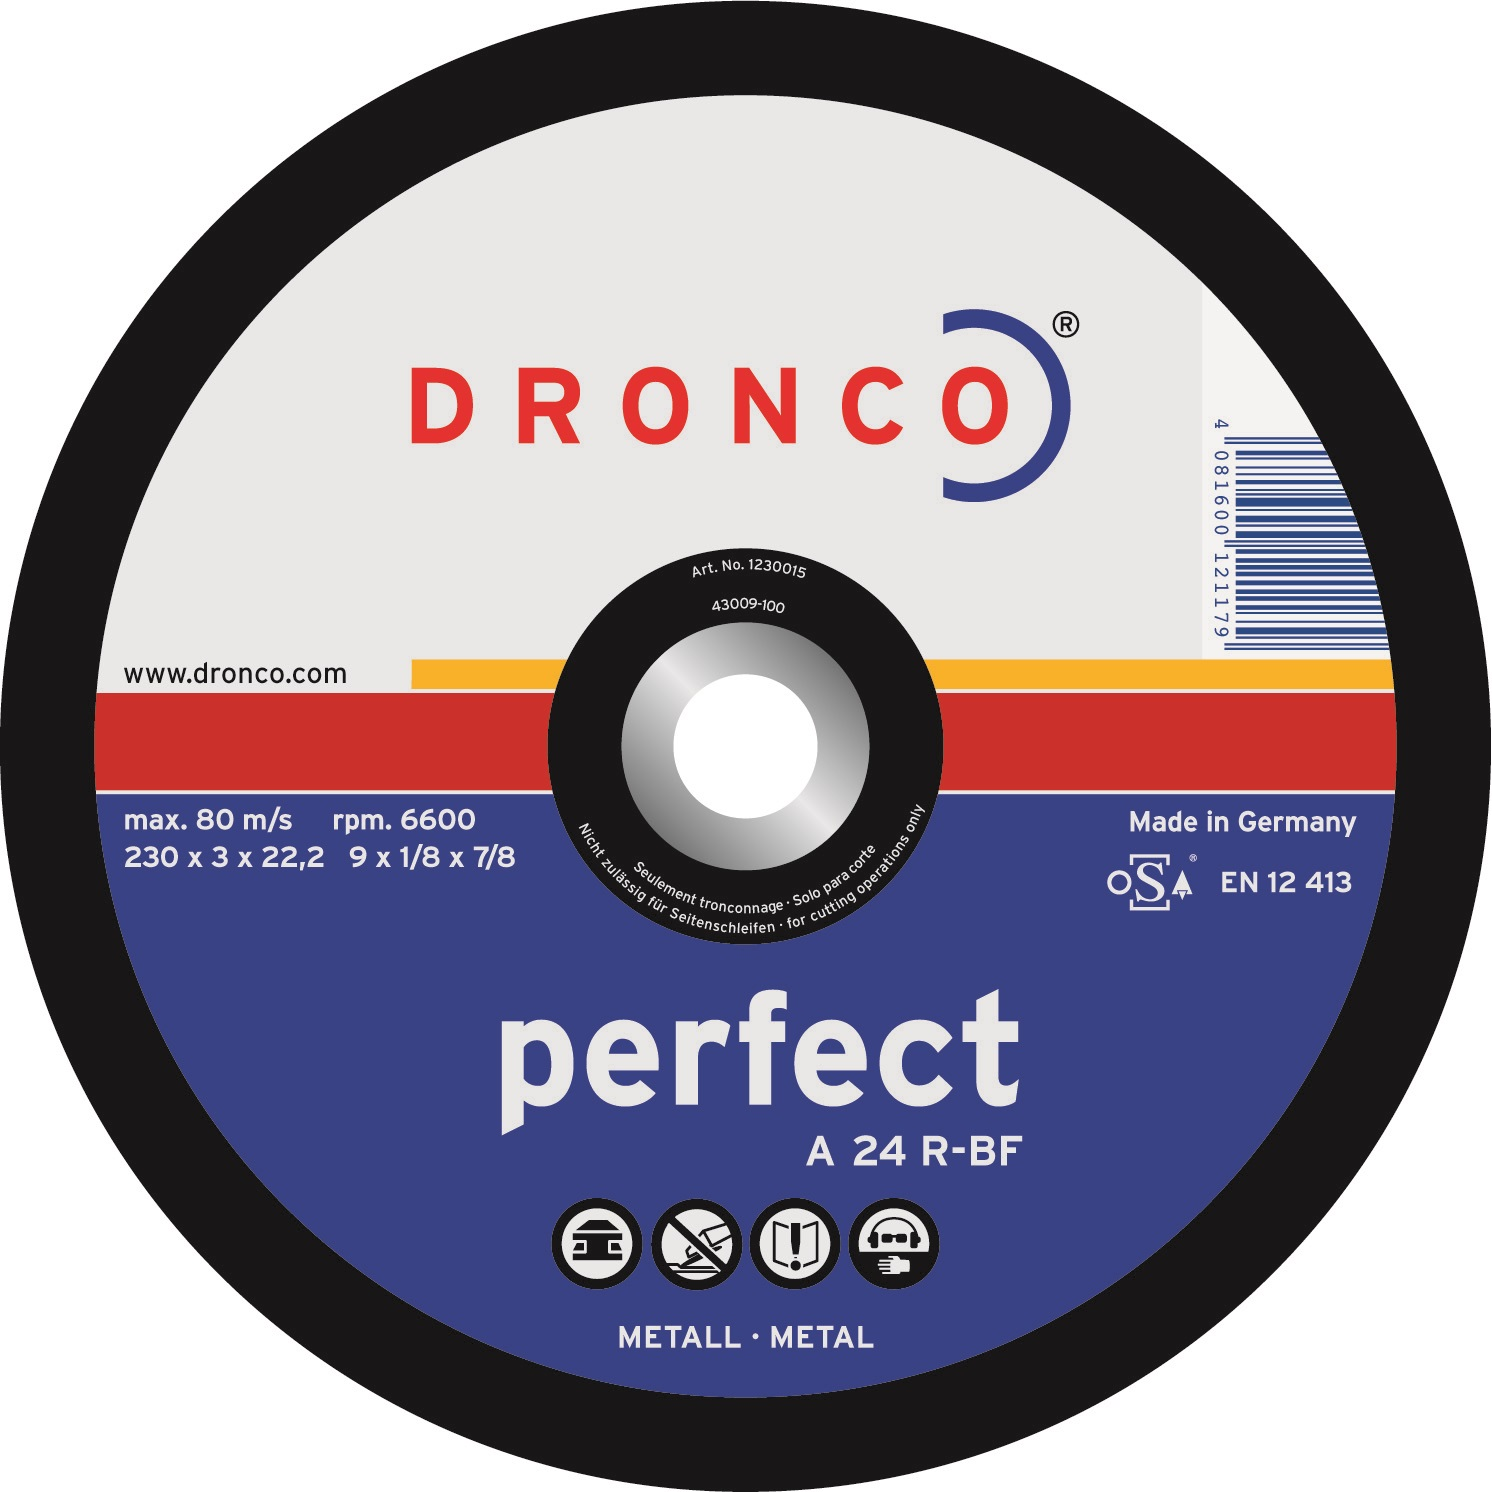 Dronco Metal Cutting Disc Flat - 115mm